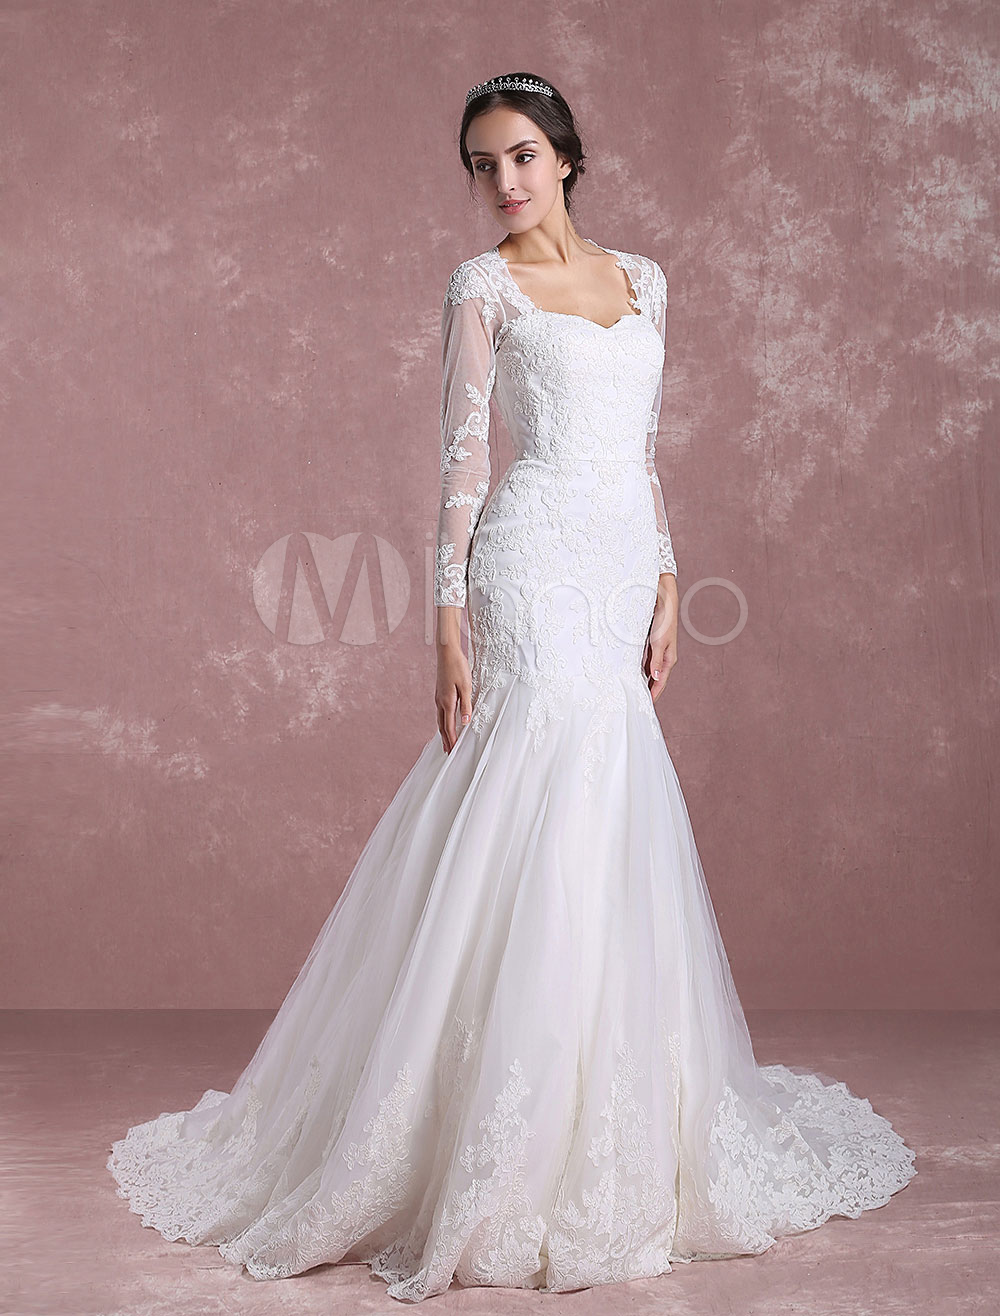 Mermaid Wedding Dress Long Sleeve Bridal Dress Lace Applique Anne Queen Collar Cut Out Back Bridal Gown With Chapel Train